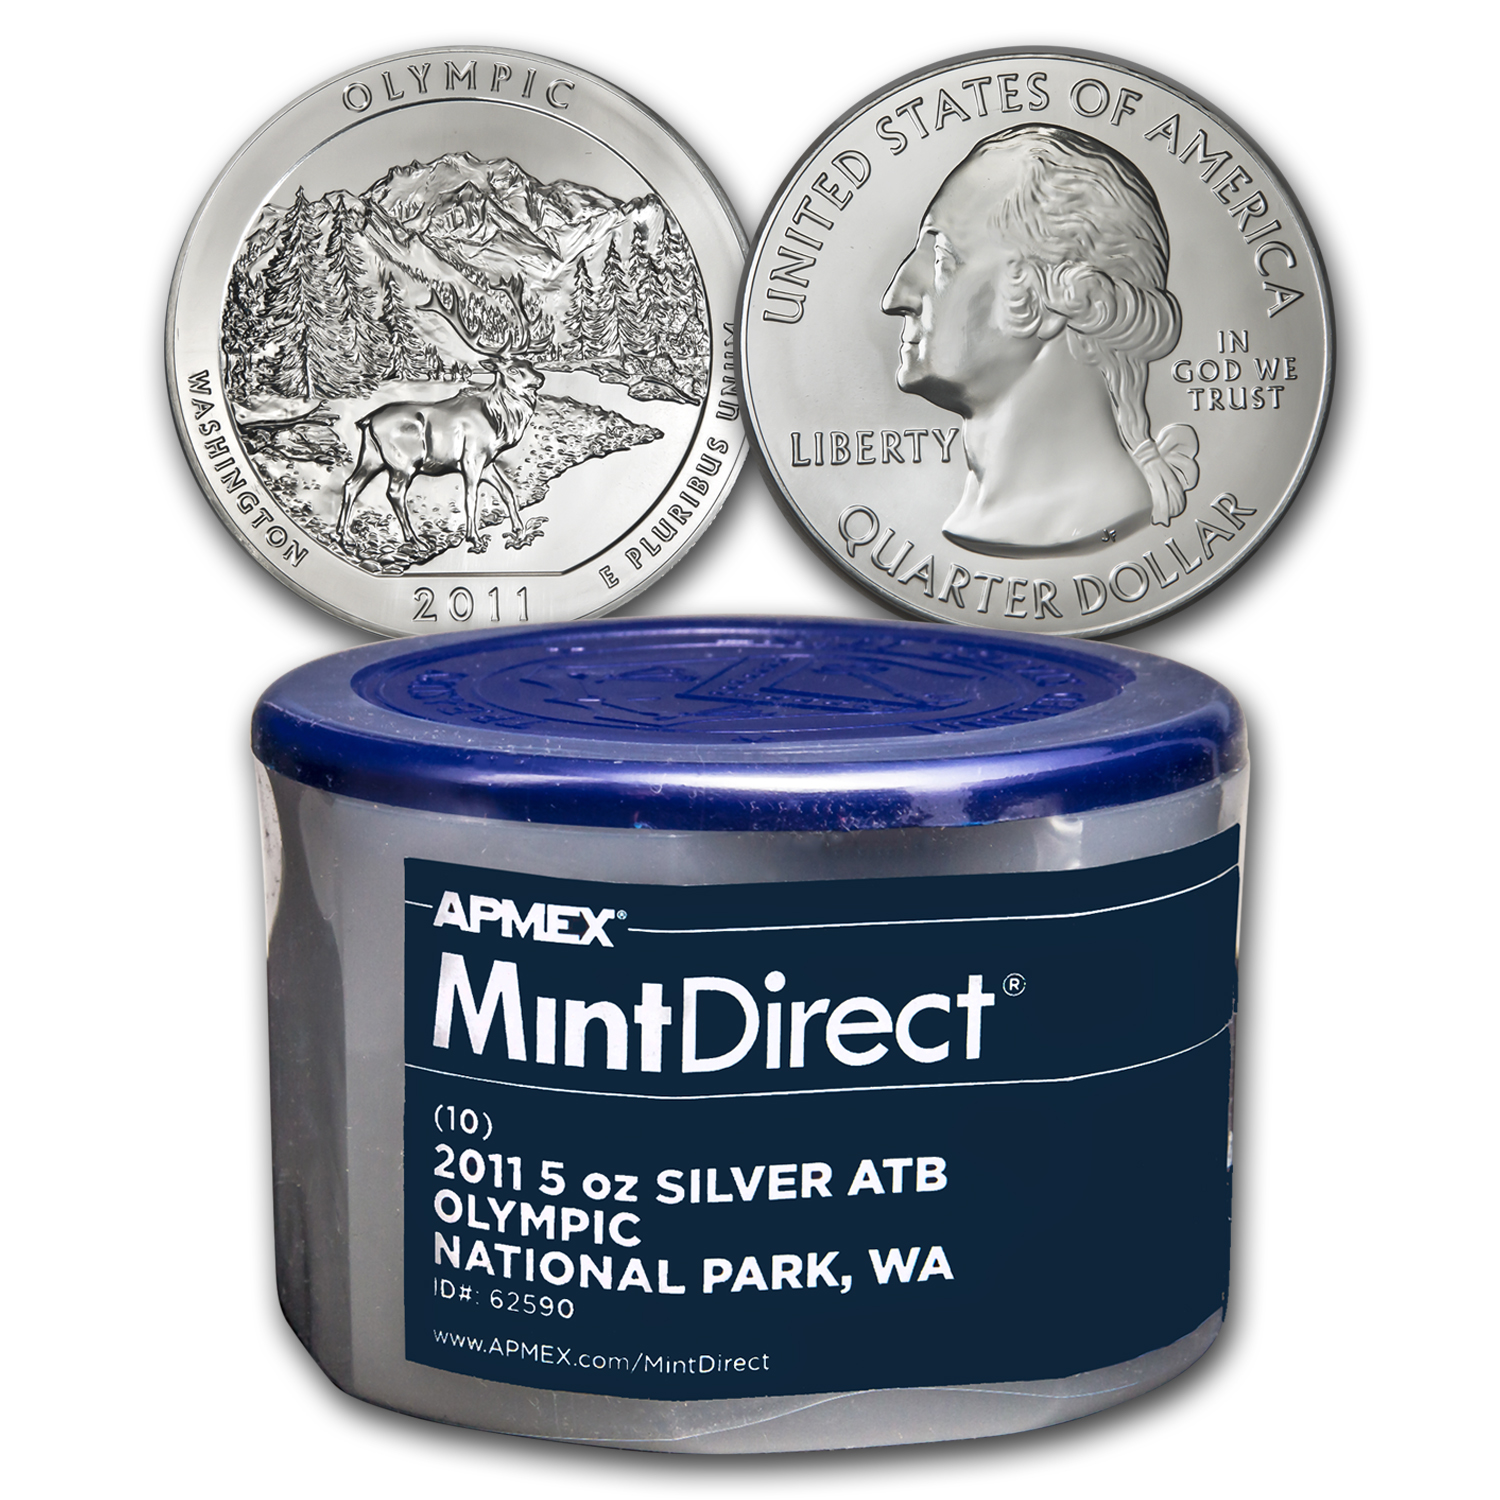 2011 5 oz Silver ATB Olympic, WA (10-Coin MintDirect® Tube)